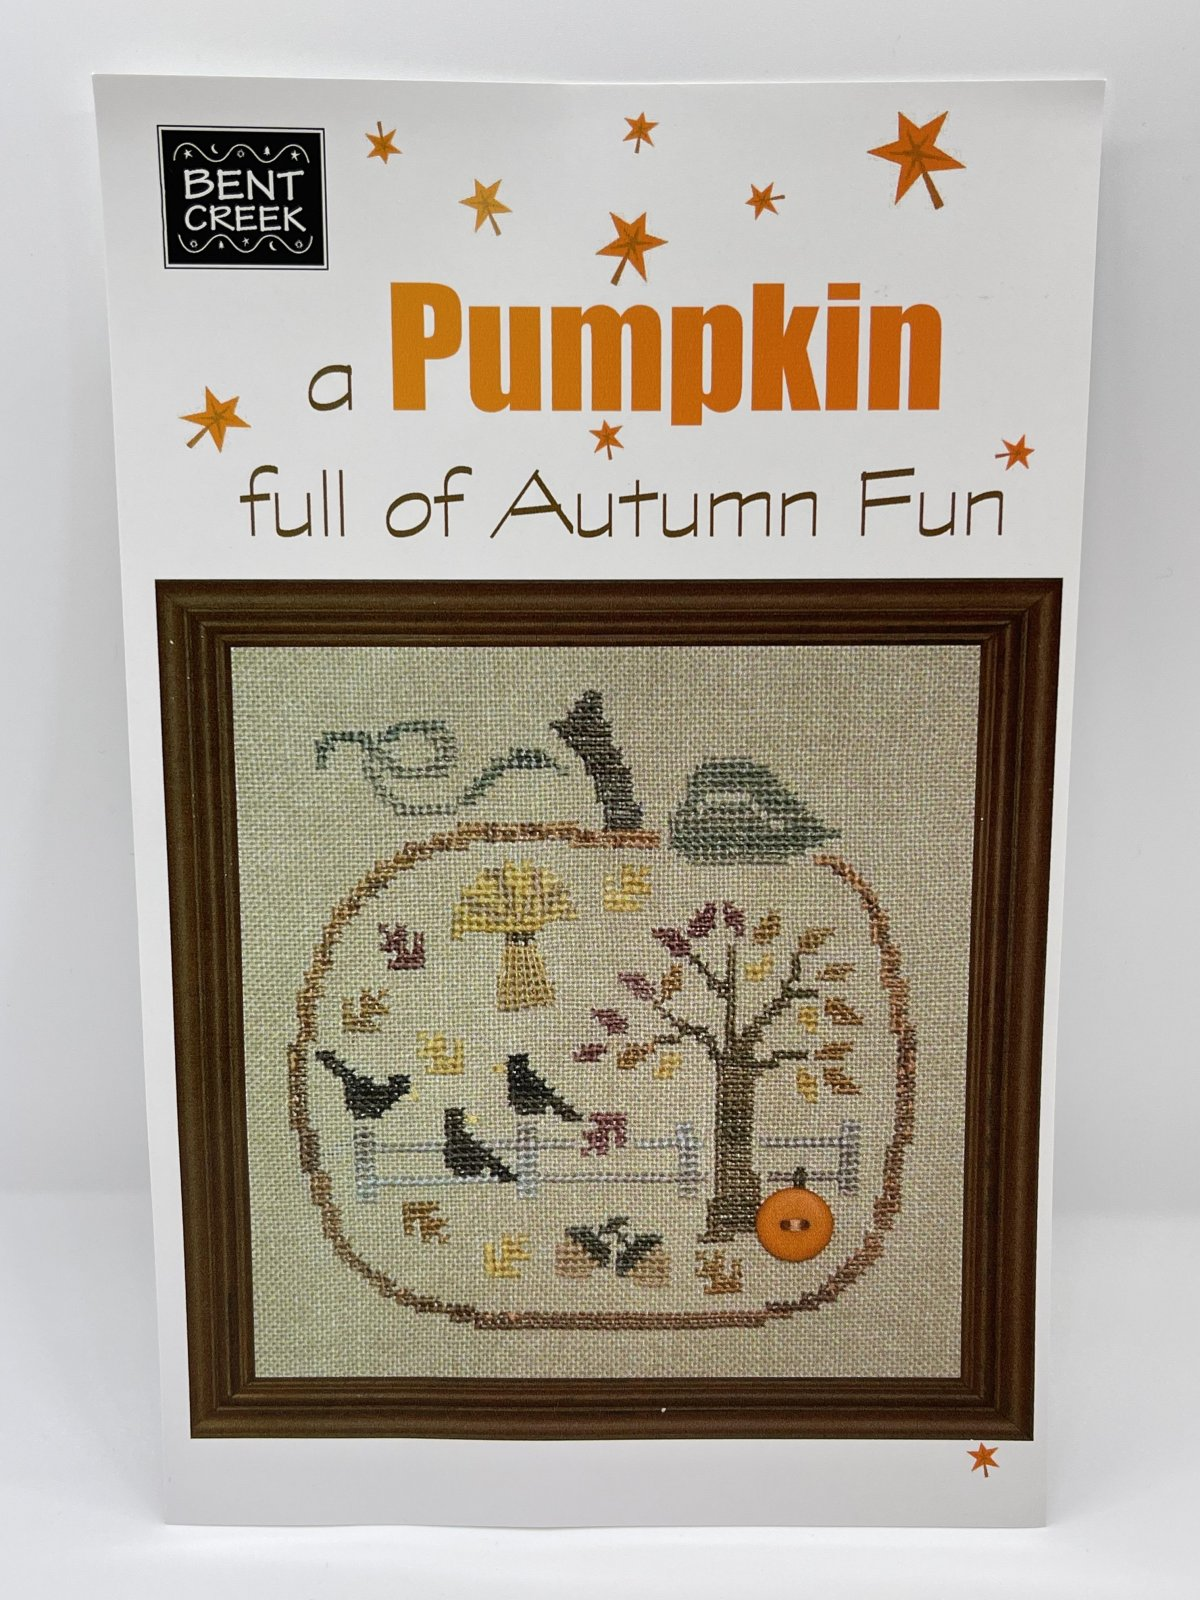 A Pumpkin full of Autumn Fun